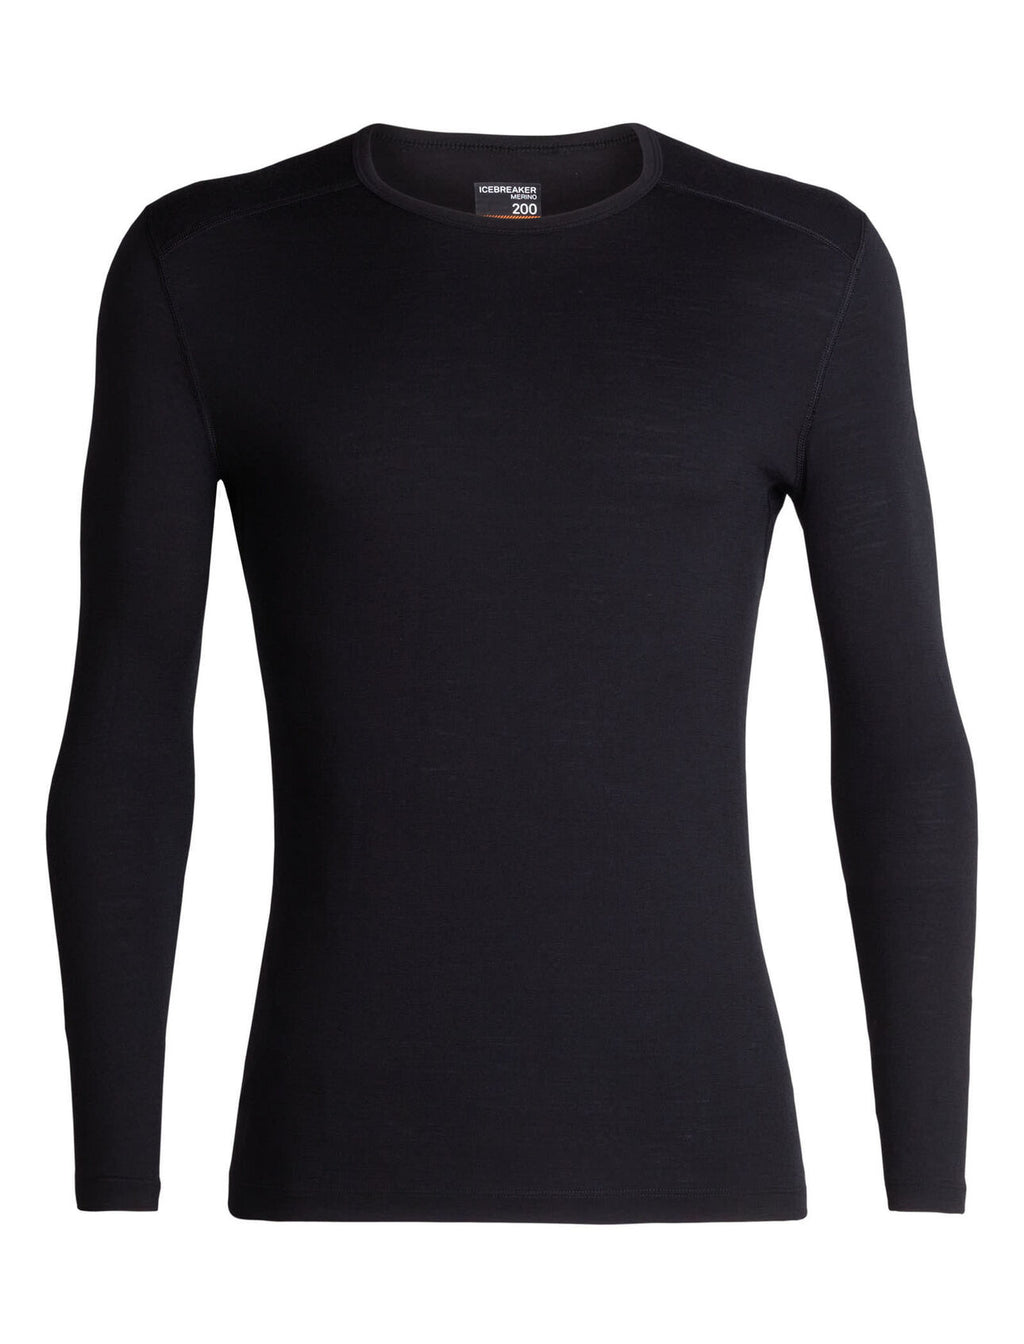 Men's Merino 200 Oasis Long Sleeve Crewe Thermal Top